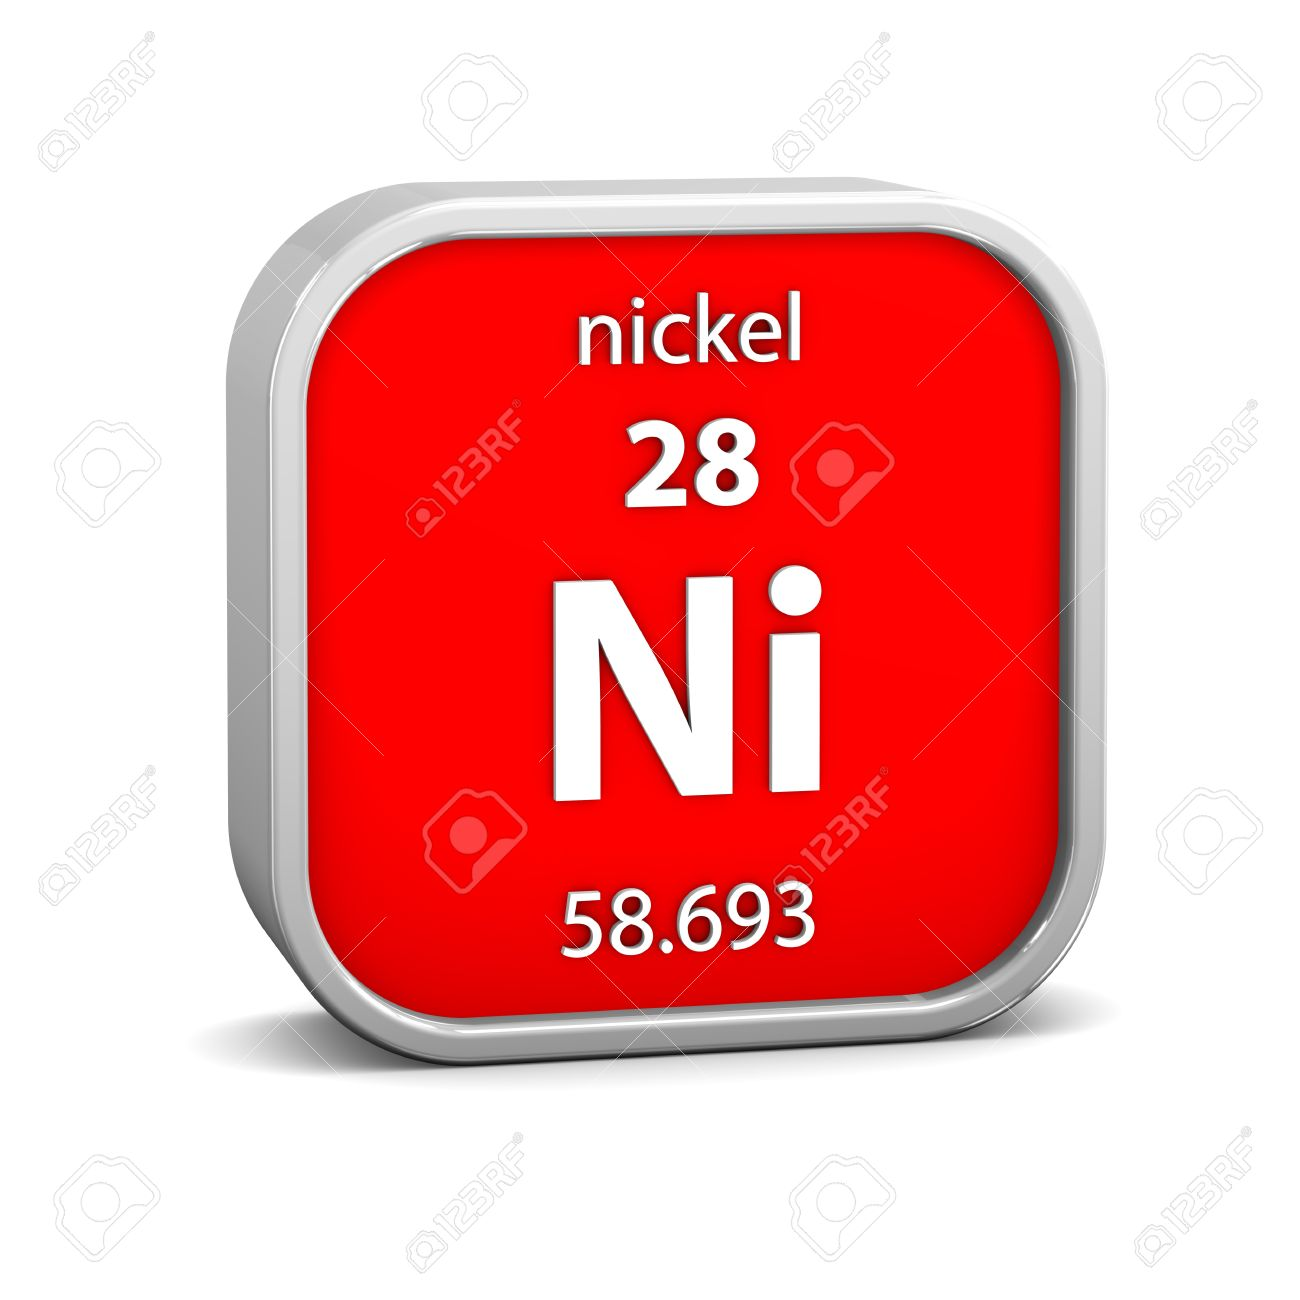 Periodic table symbol for nickel image collections periodic symbol for nickel on periodic table images periodic table images nickel material on the periodic table gamestrikefo Gallery